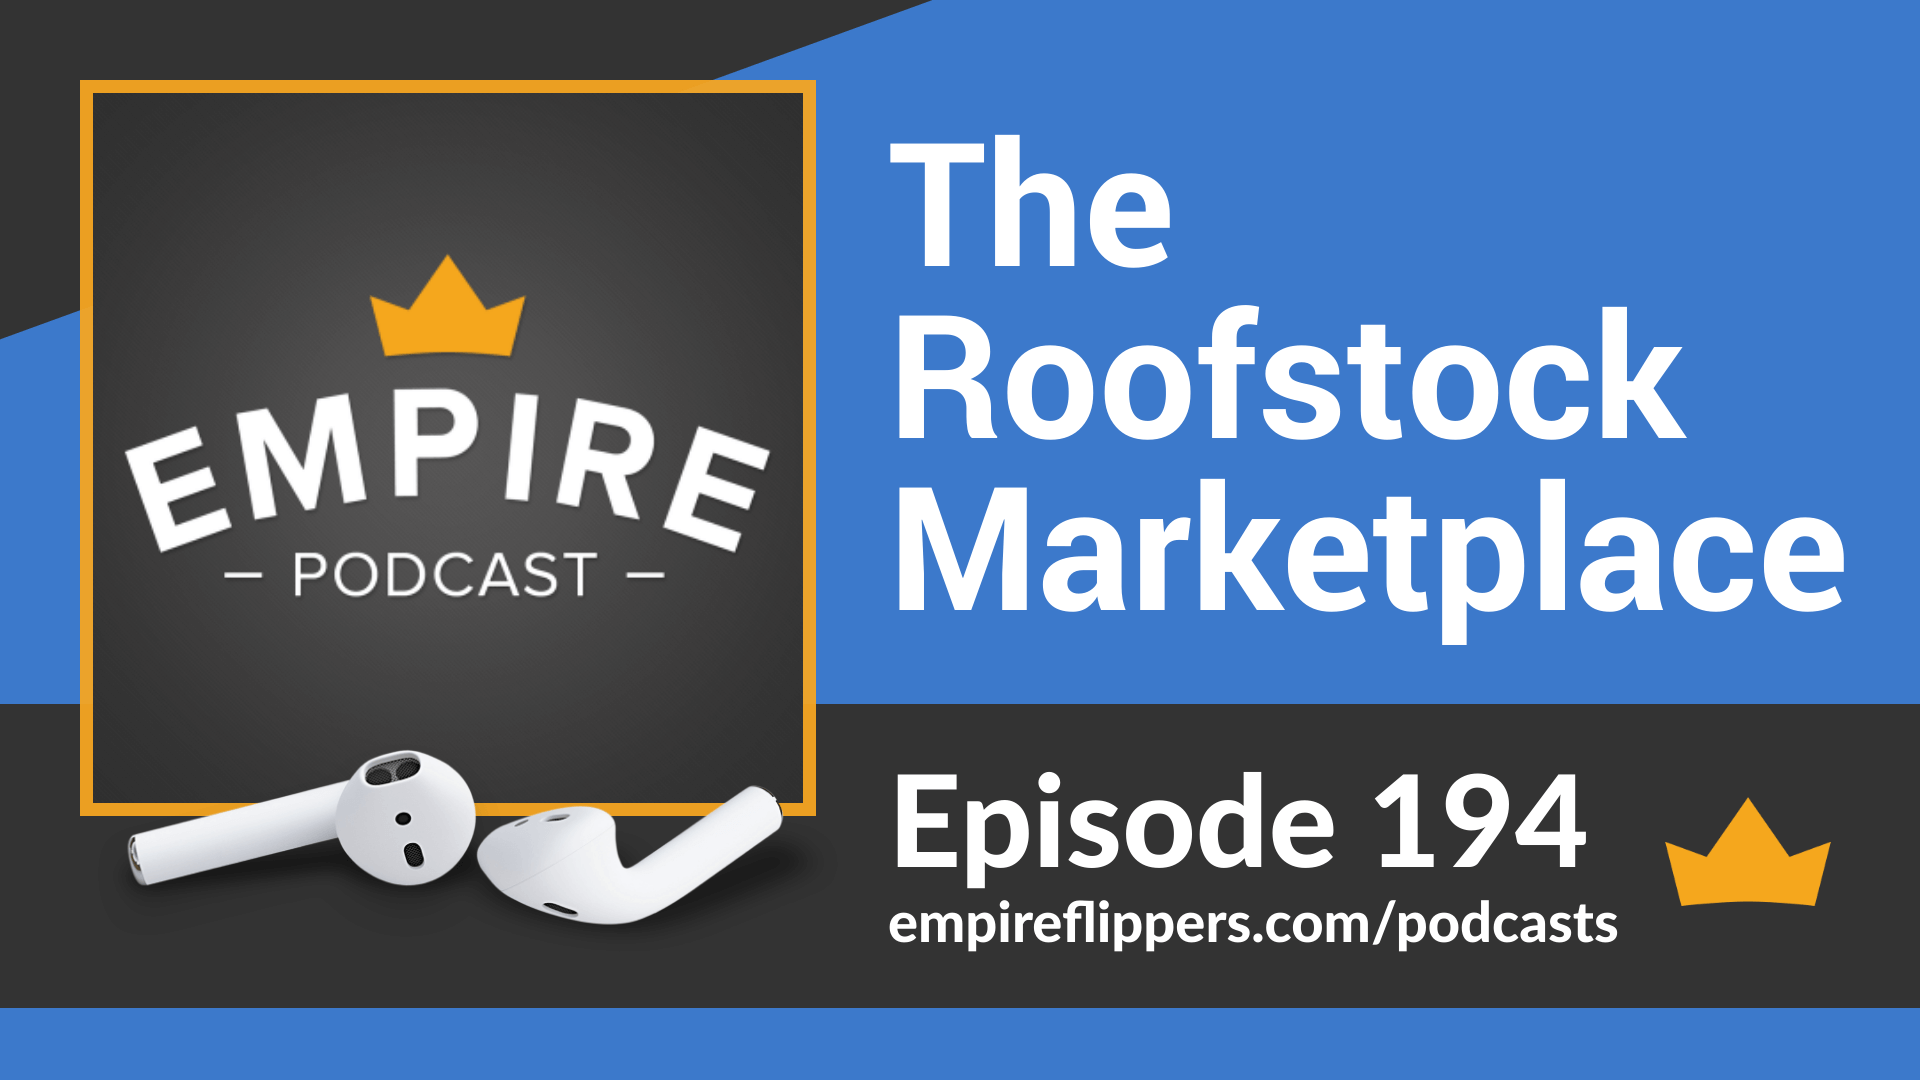 EFP 194 - The Roofstock Marketplace